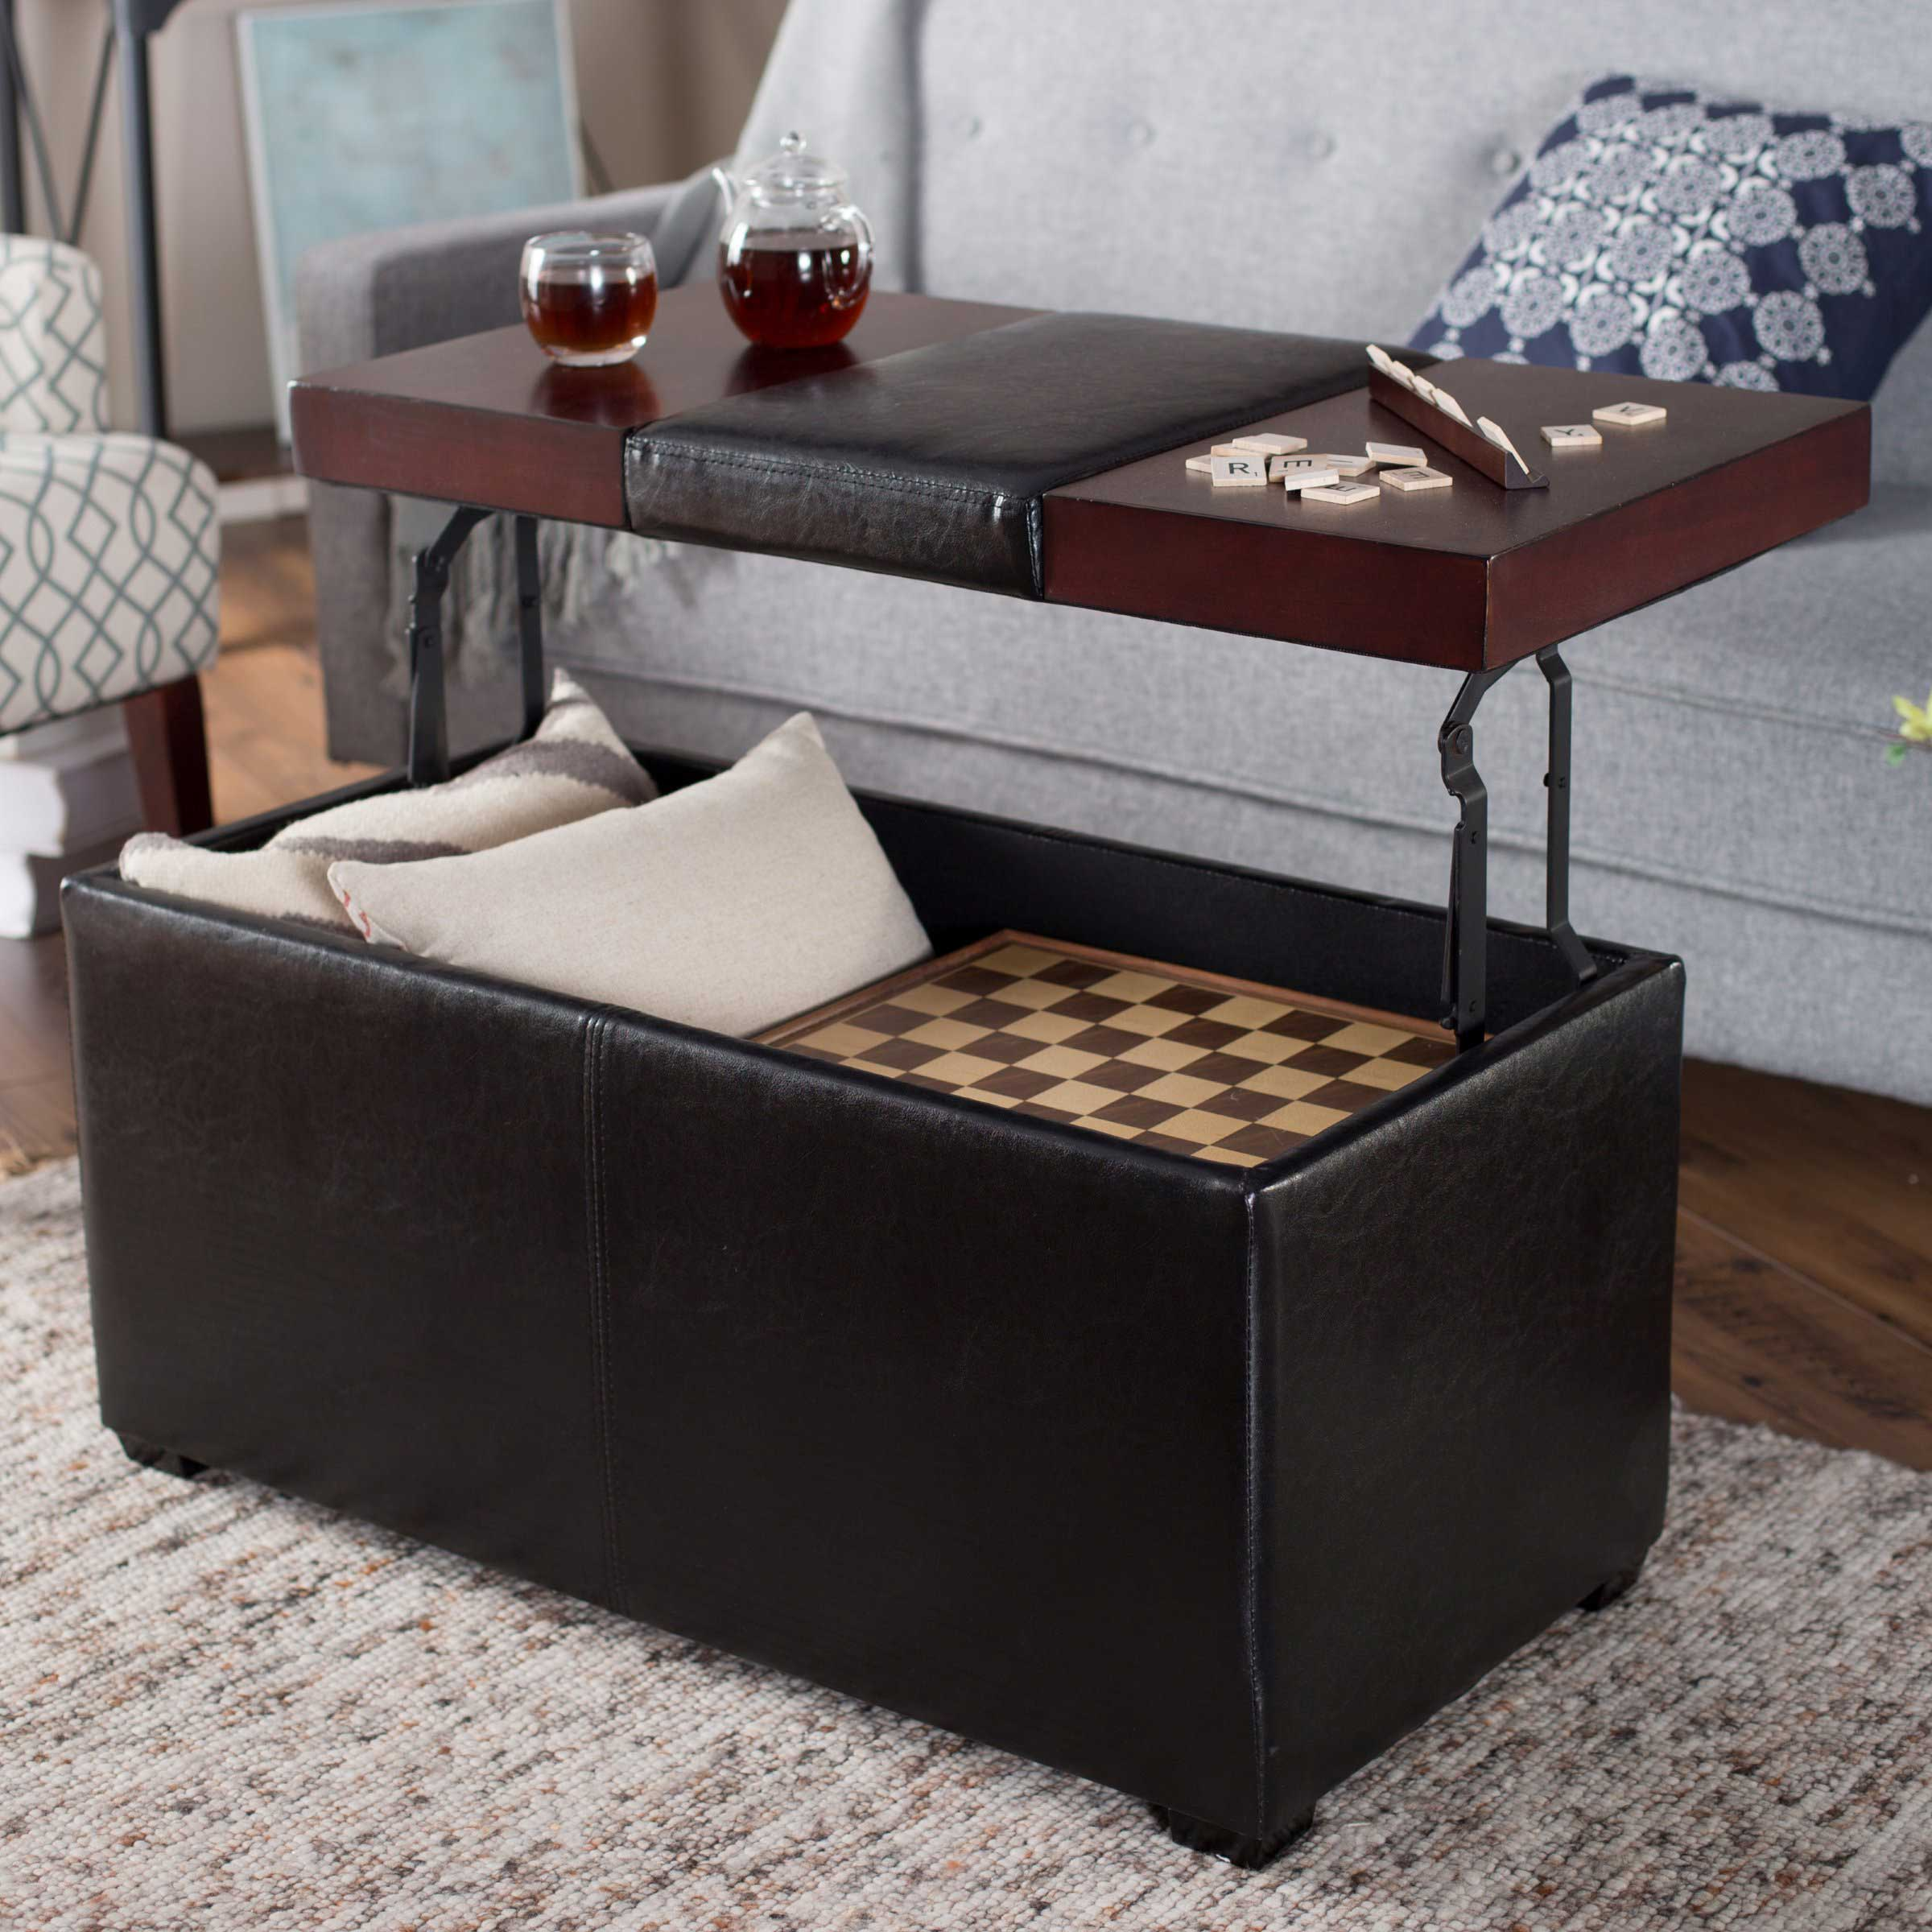 Leather coffee table with storage adorable home Coffee table with leather top